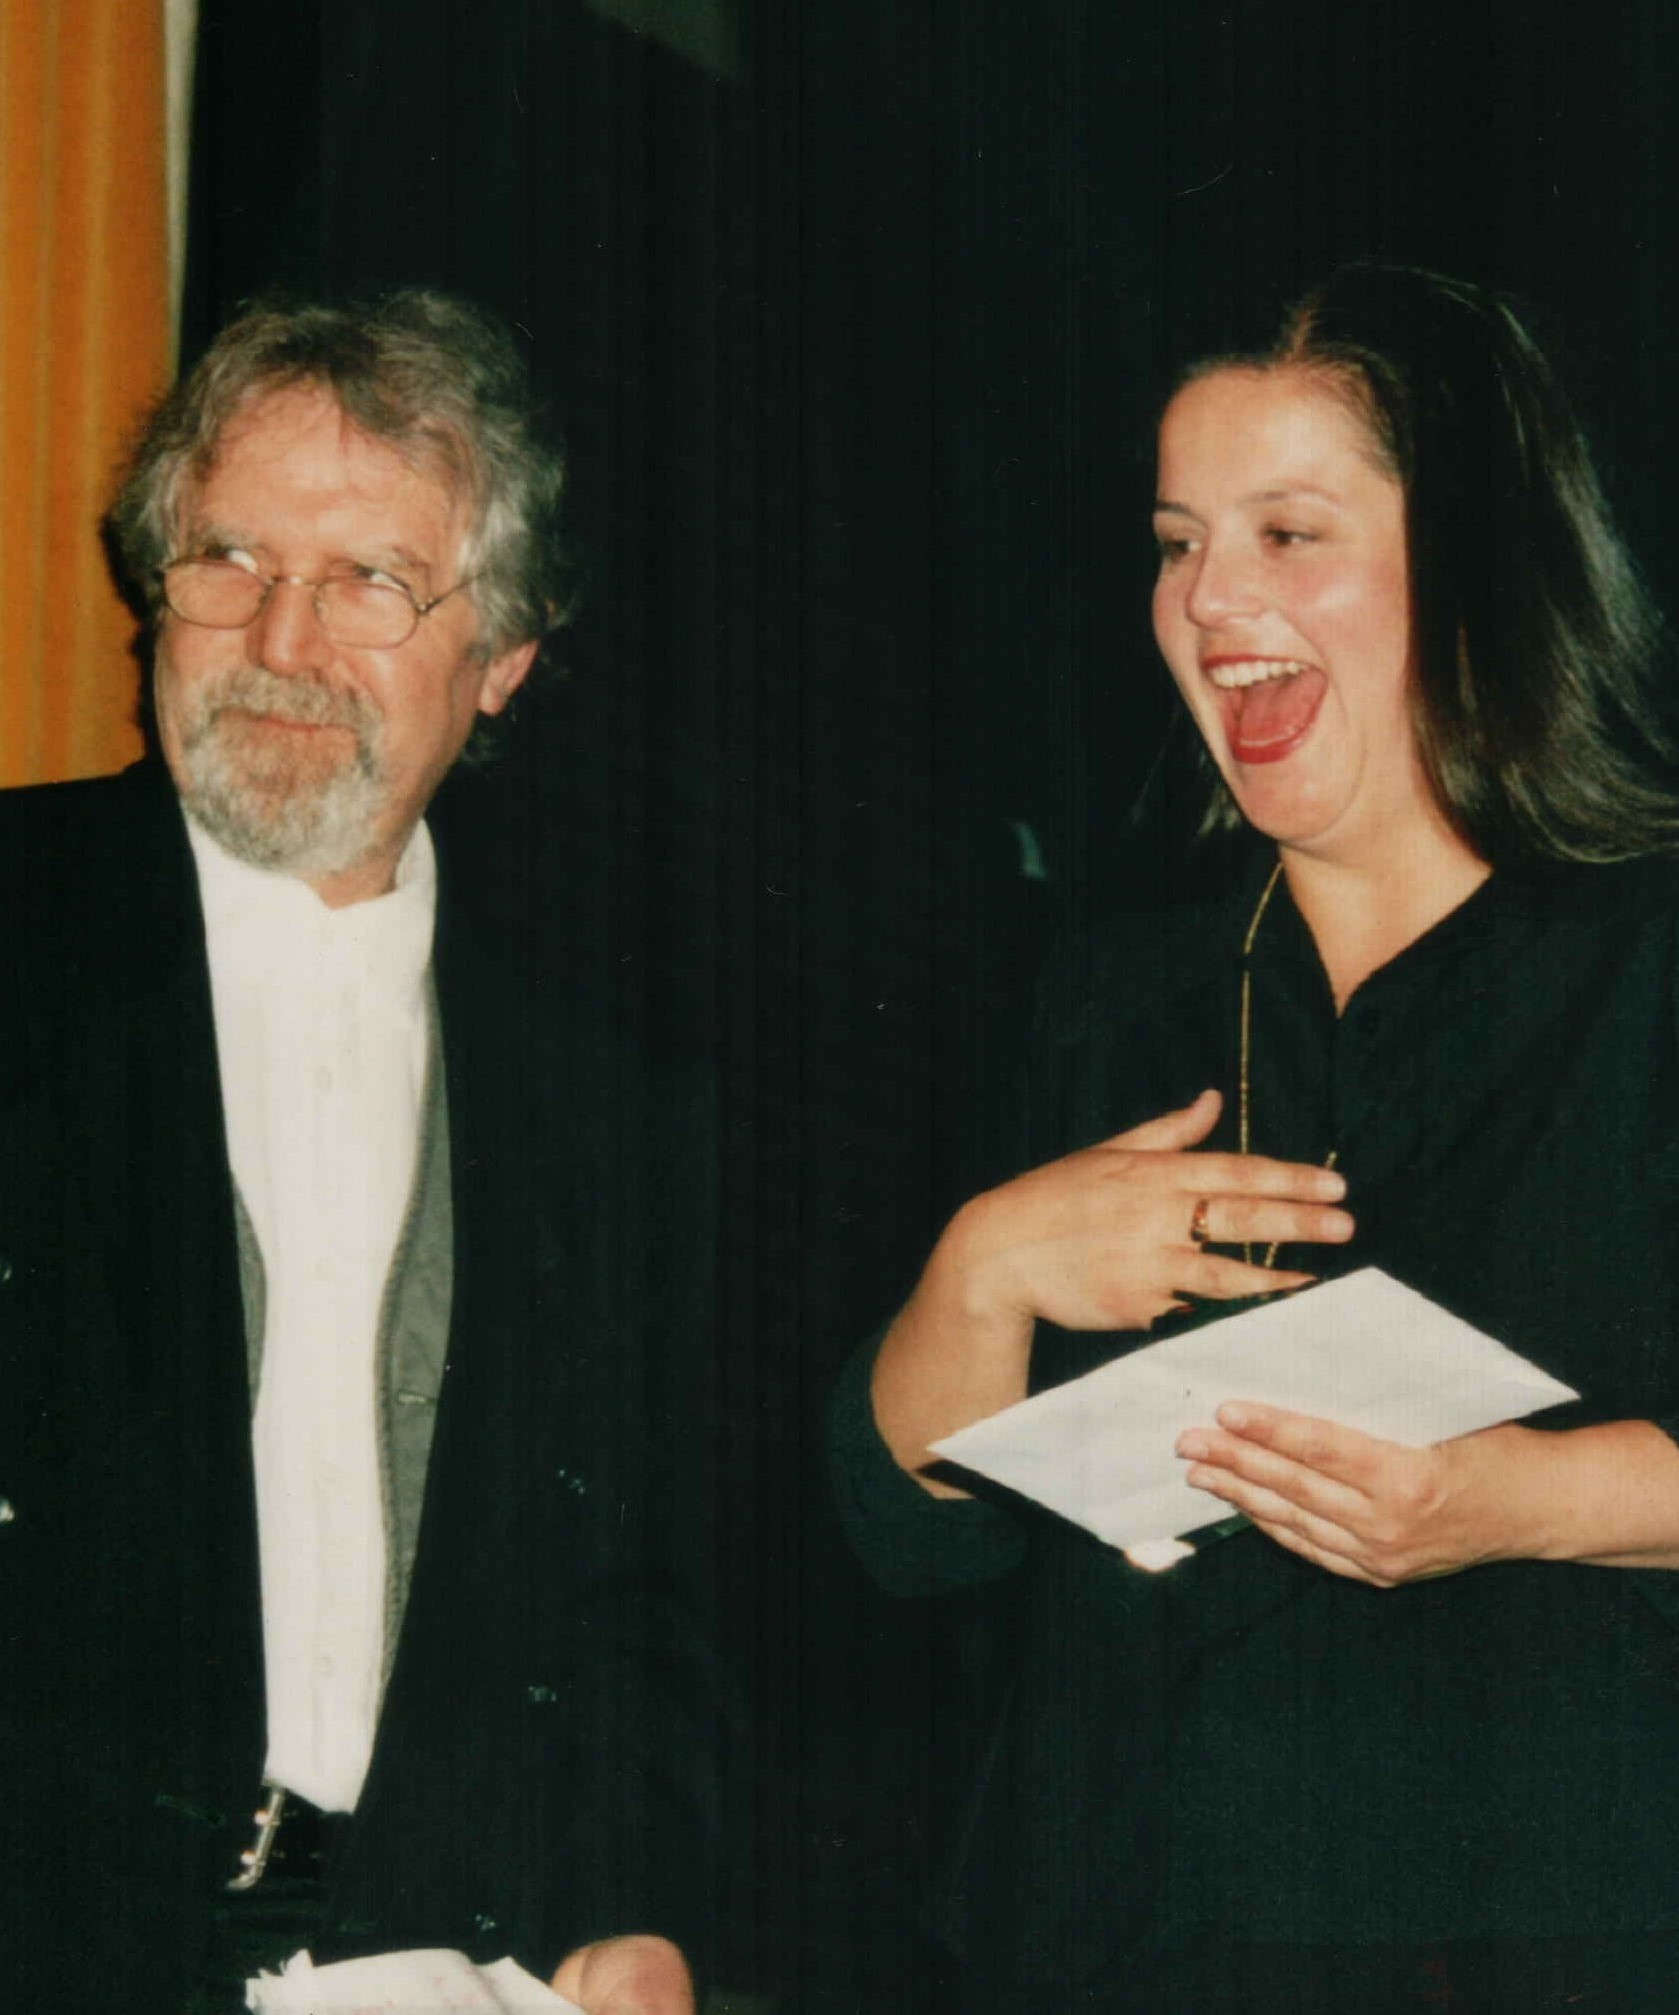 Tony Gould (left), chair of the Wangaratta National Jazz Awards, with the winner in 1998, vocalist Michelle Nicolle